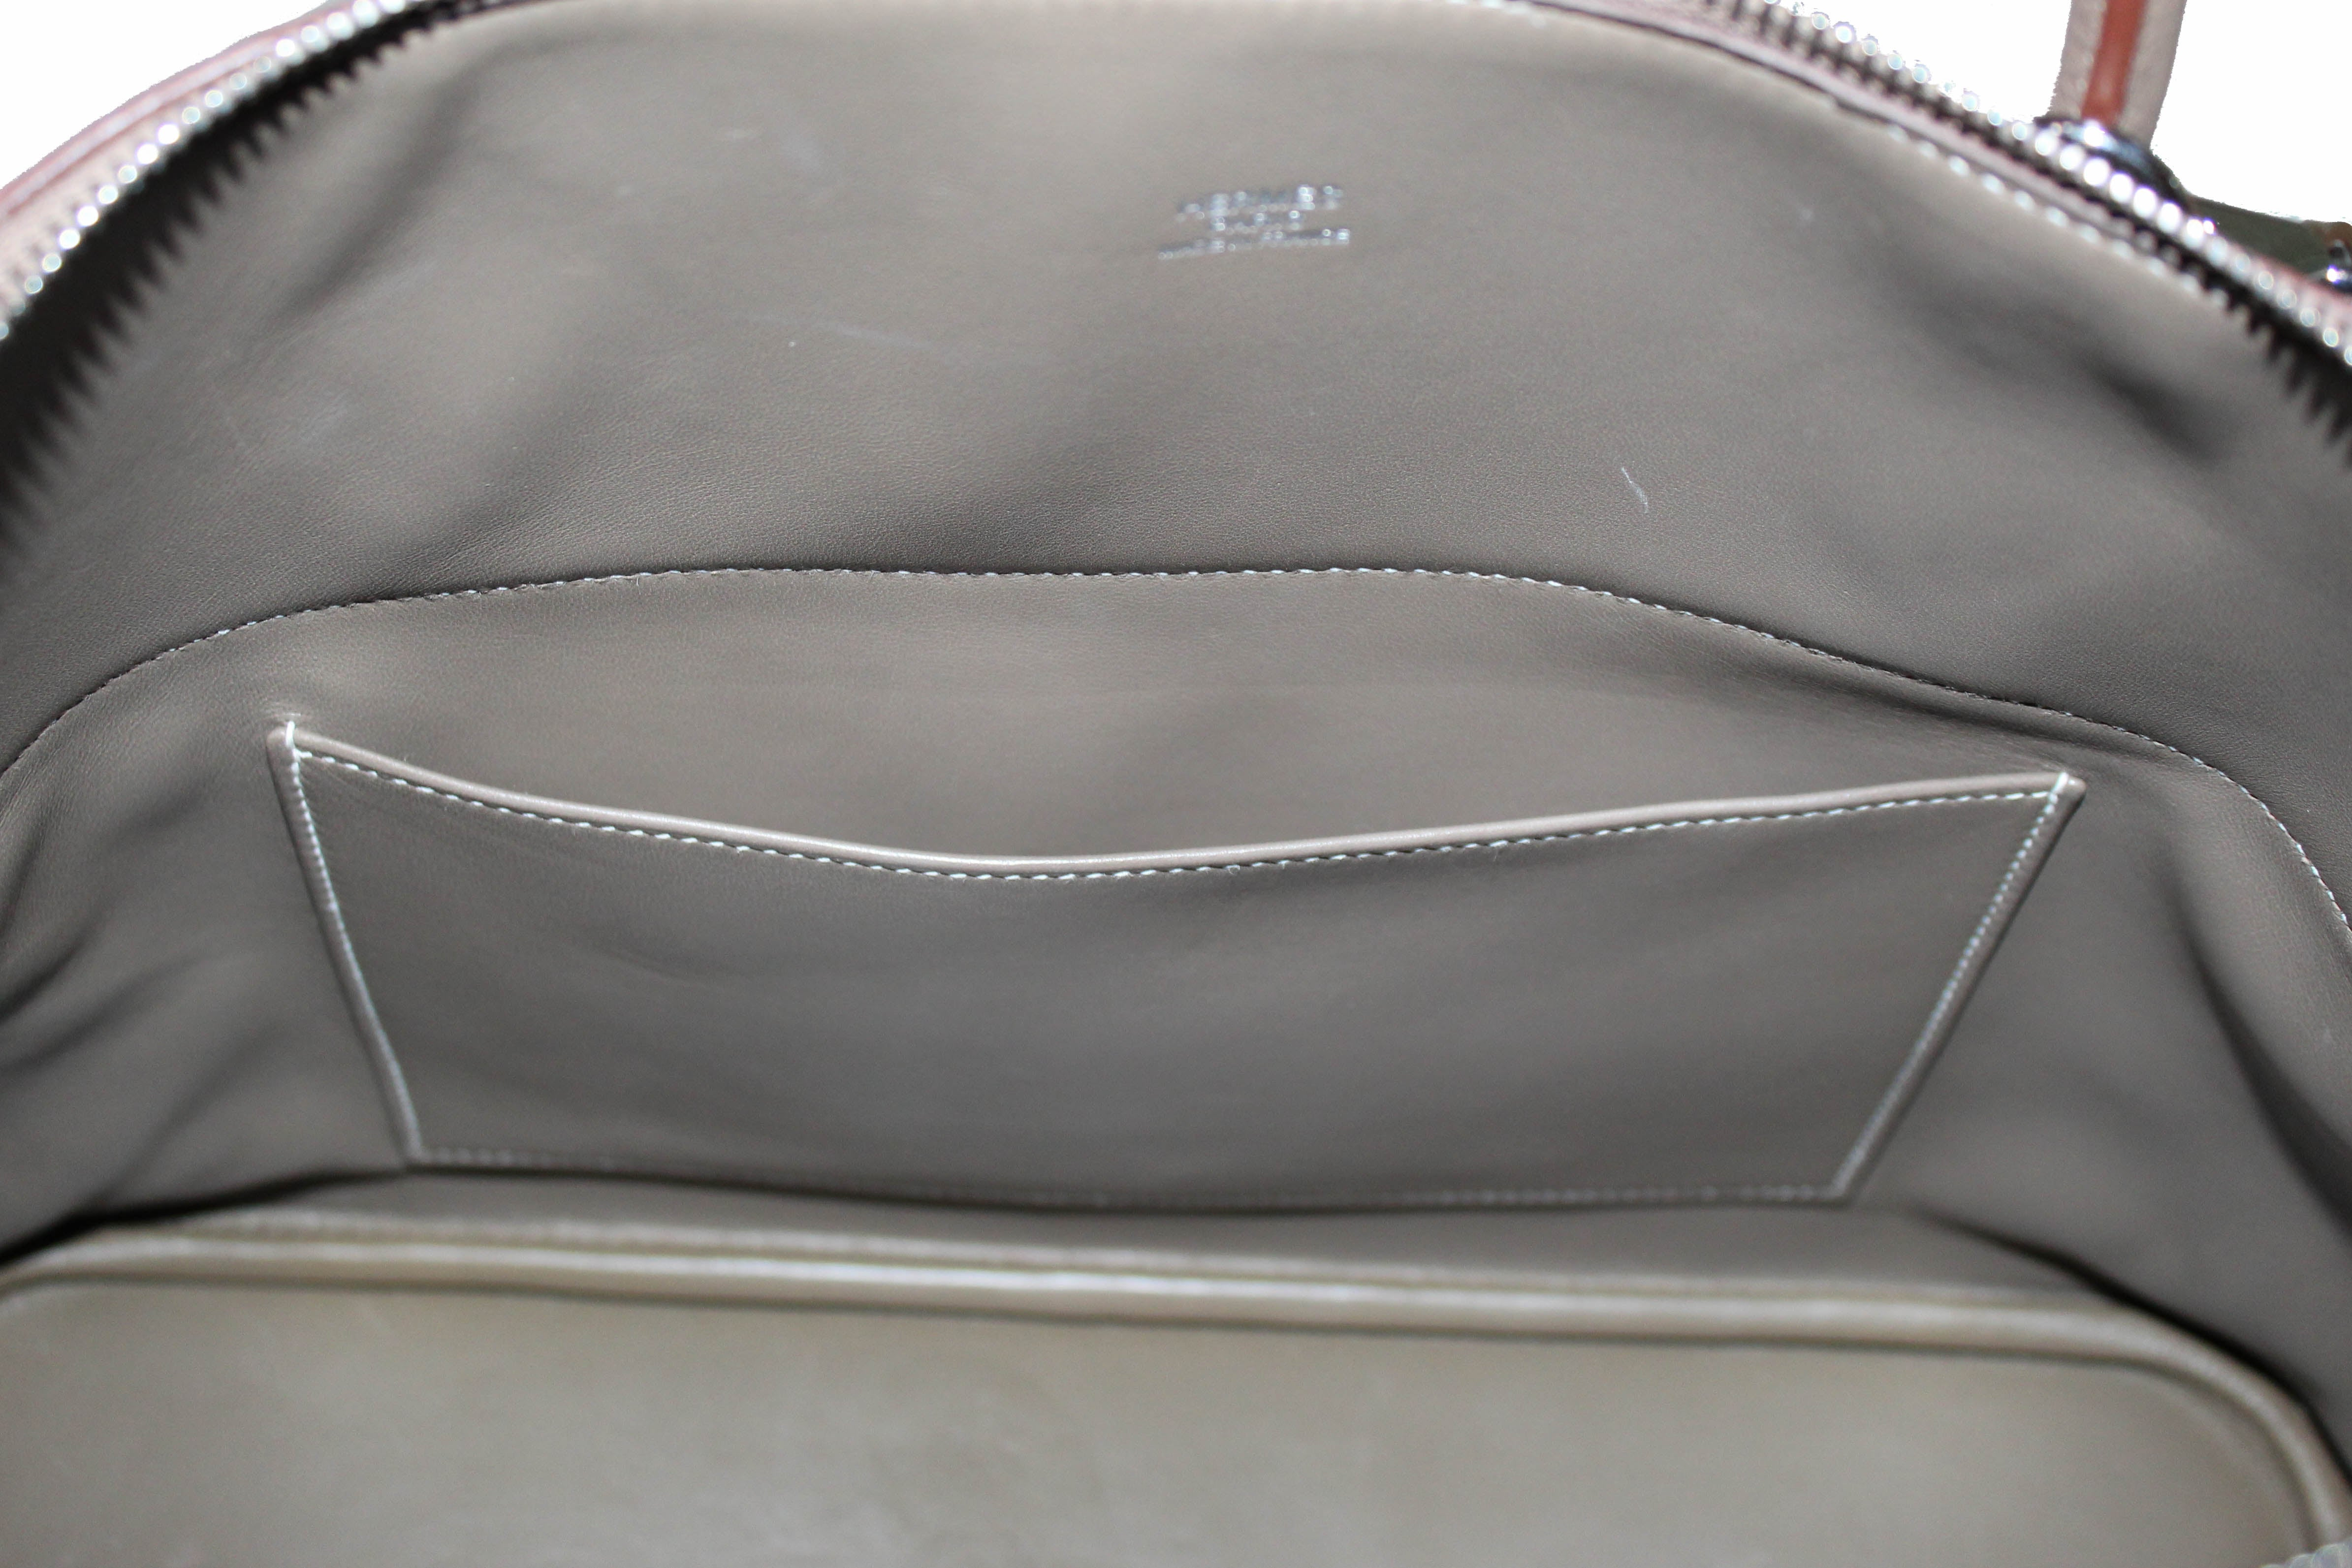 Authentic Hermes Etoupe Bolide 35 Clemence Leather Handbag/Shoulder Bag